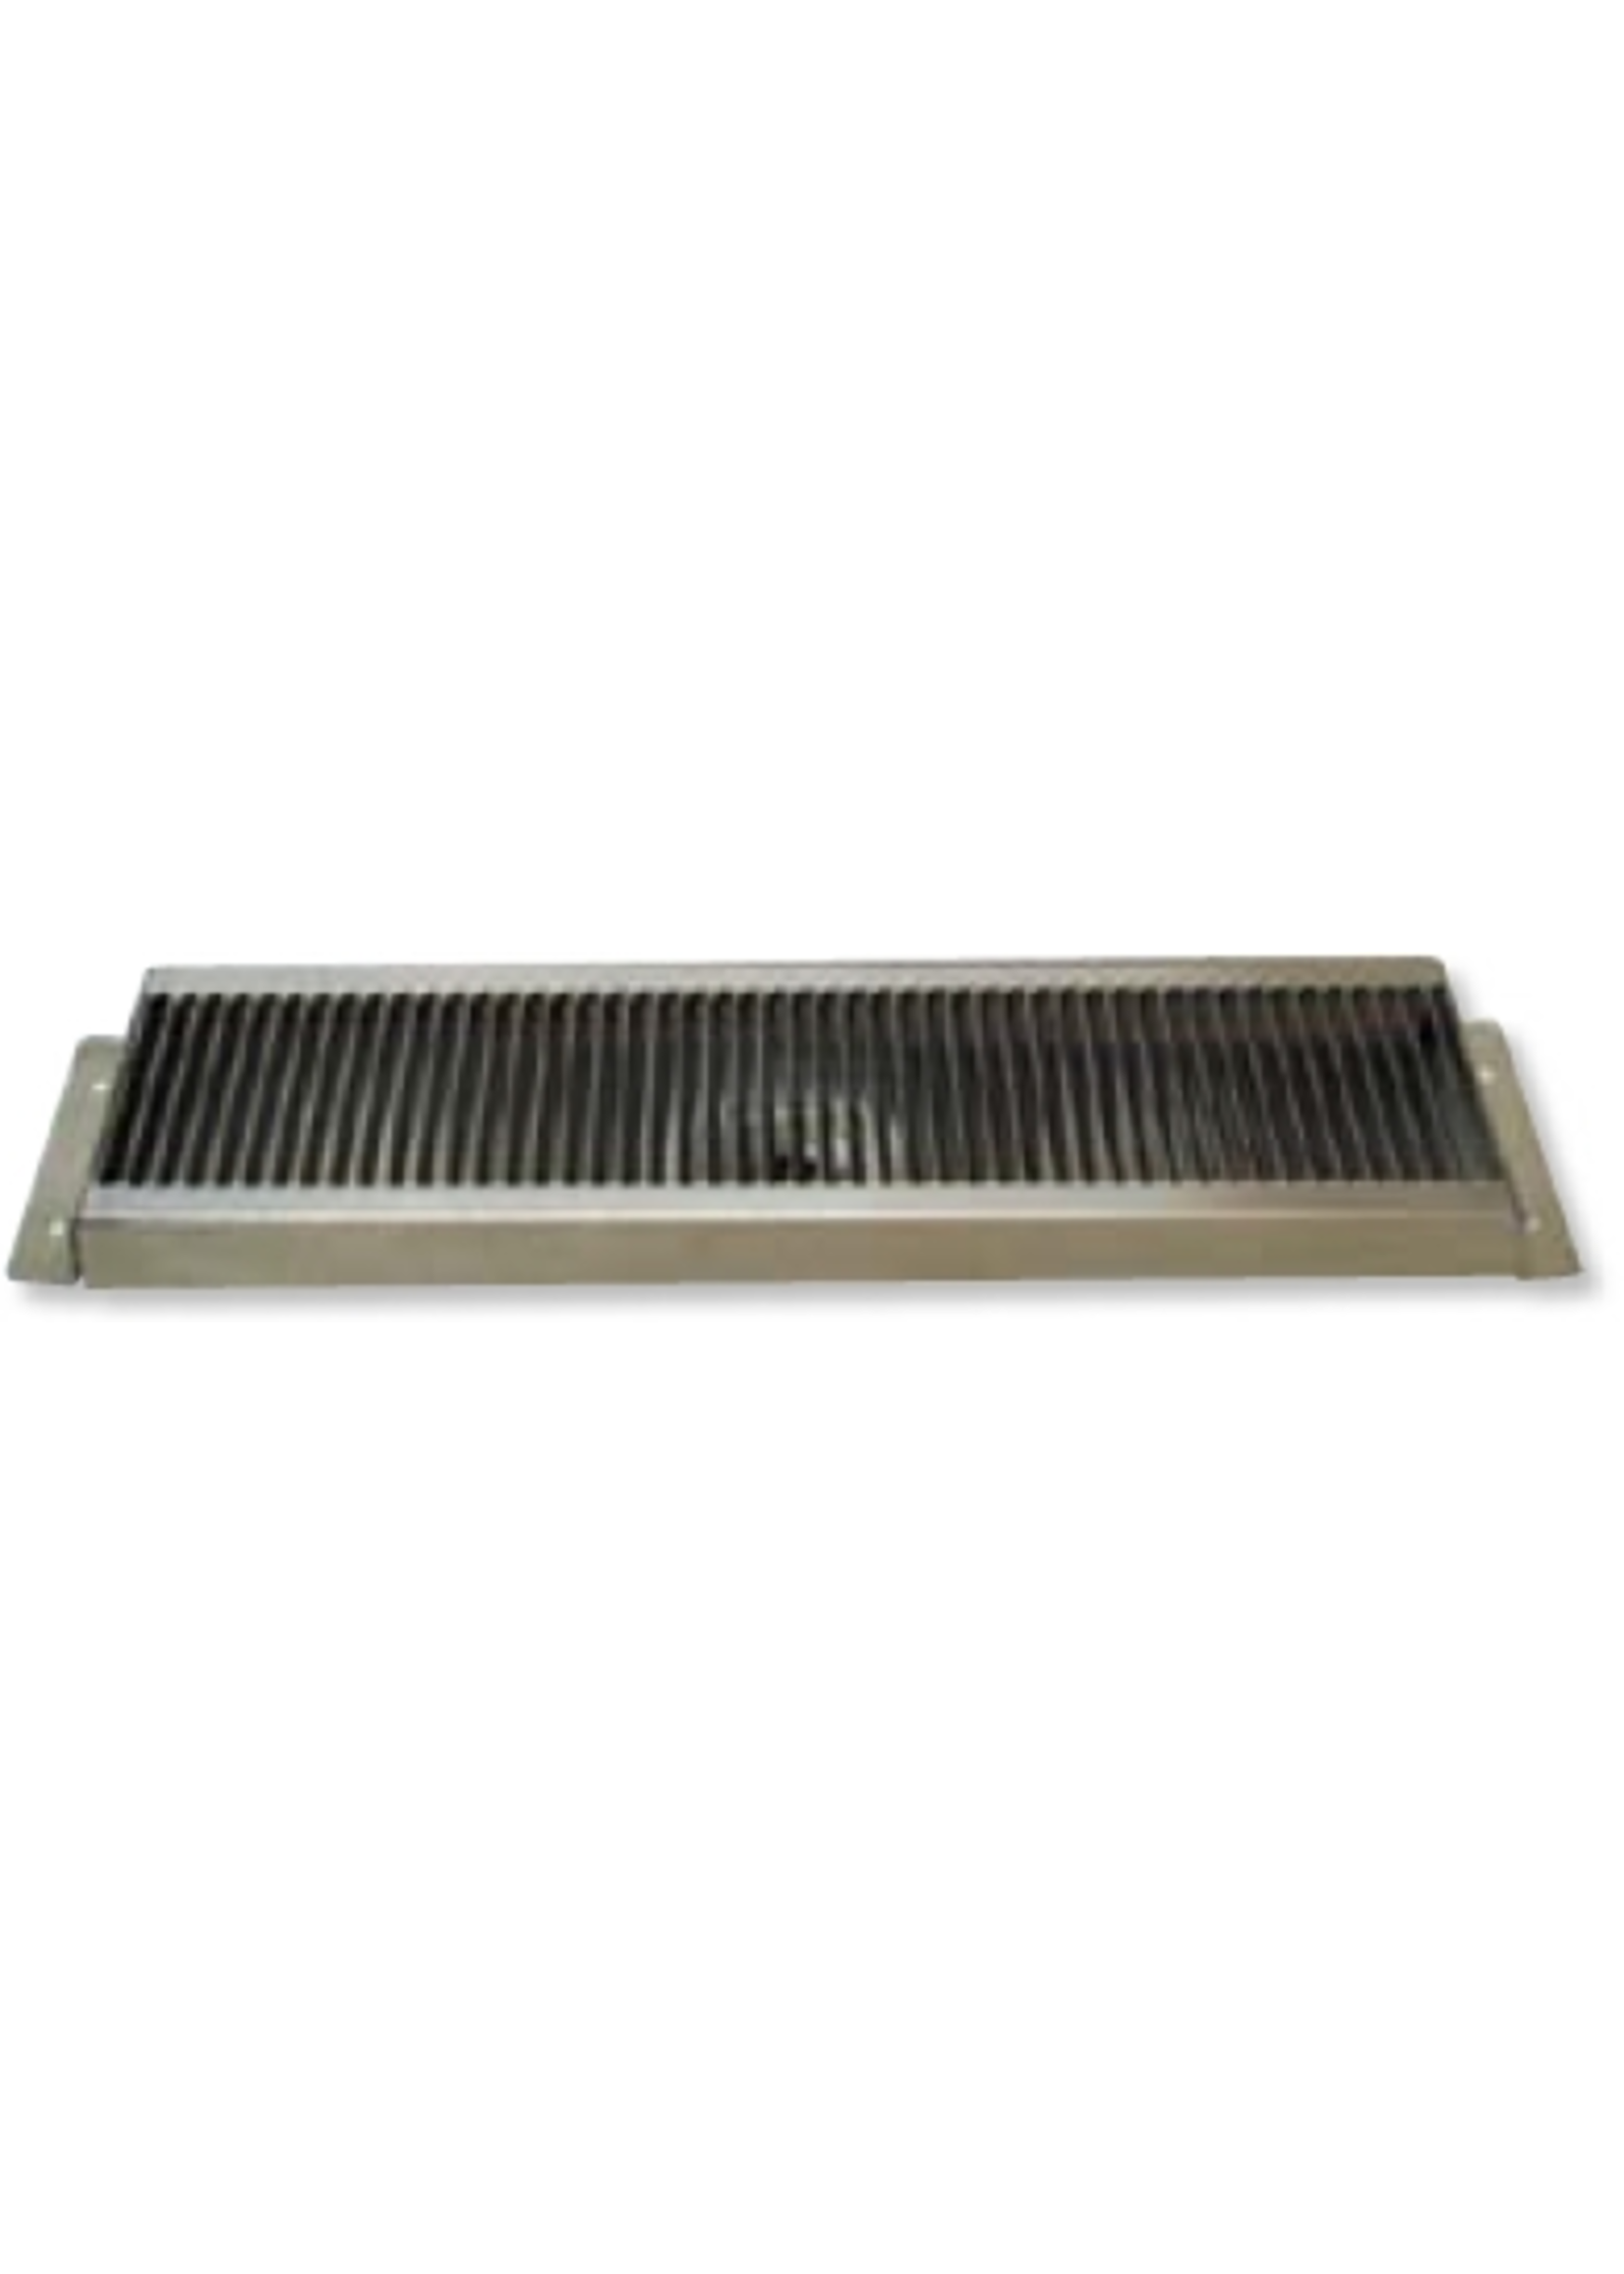 """Kegging Counter Mount Stainless Steel Drip Tray - 16"""" x 5.125"""" - 1"""" Drain Depth and 1/2"""" MPT Threaded Brass Drain Tube"""